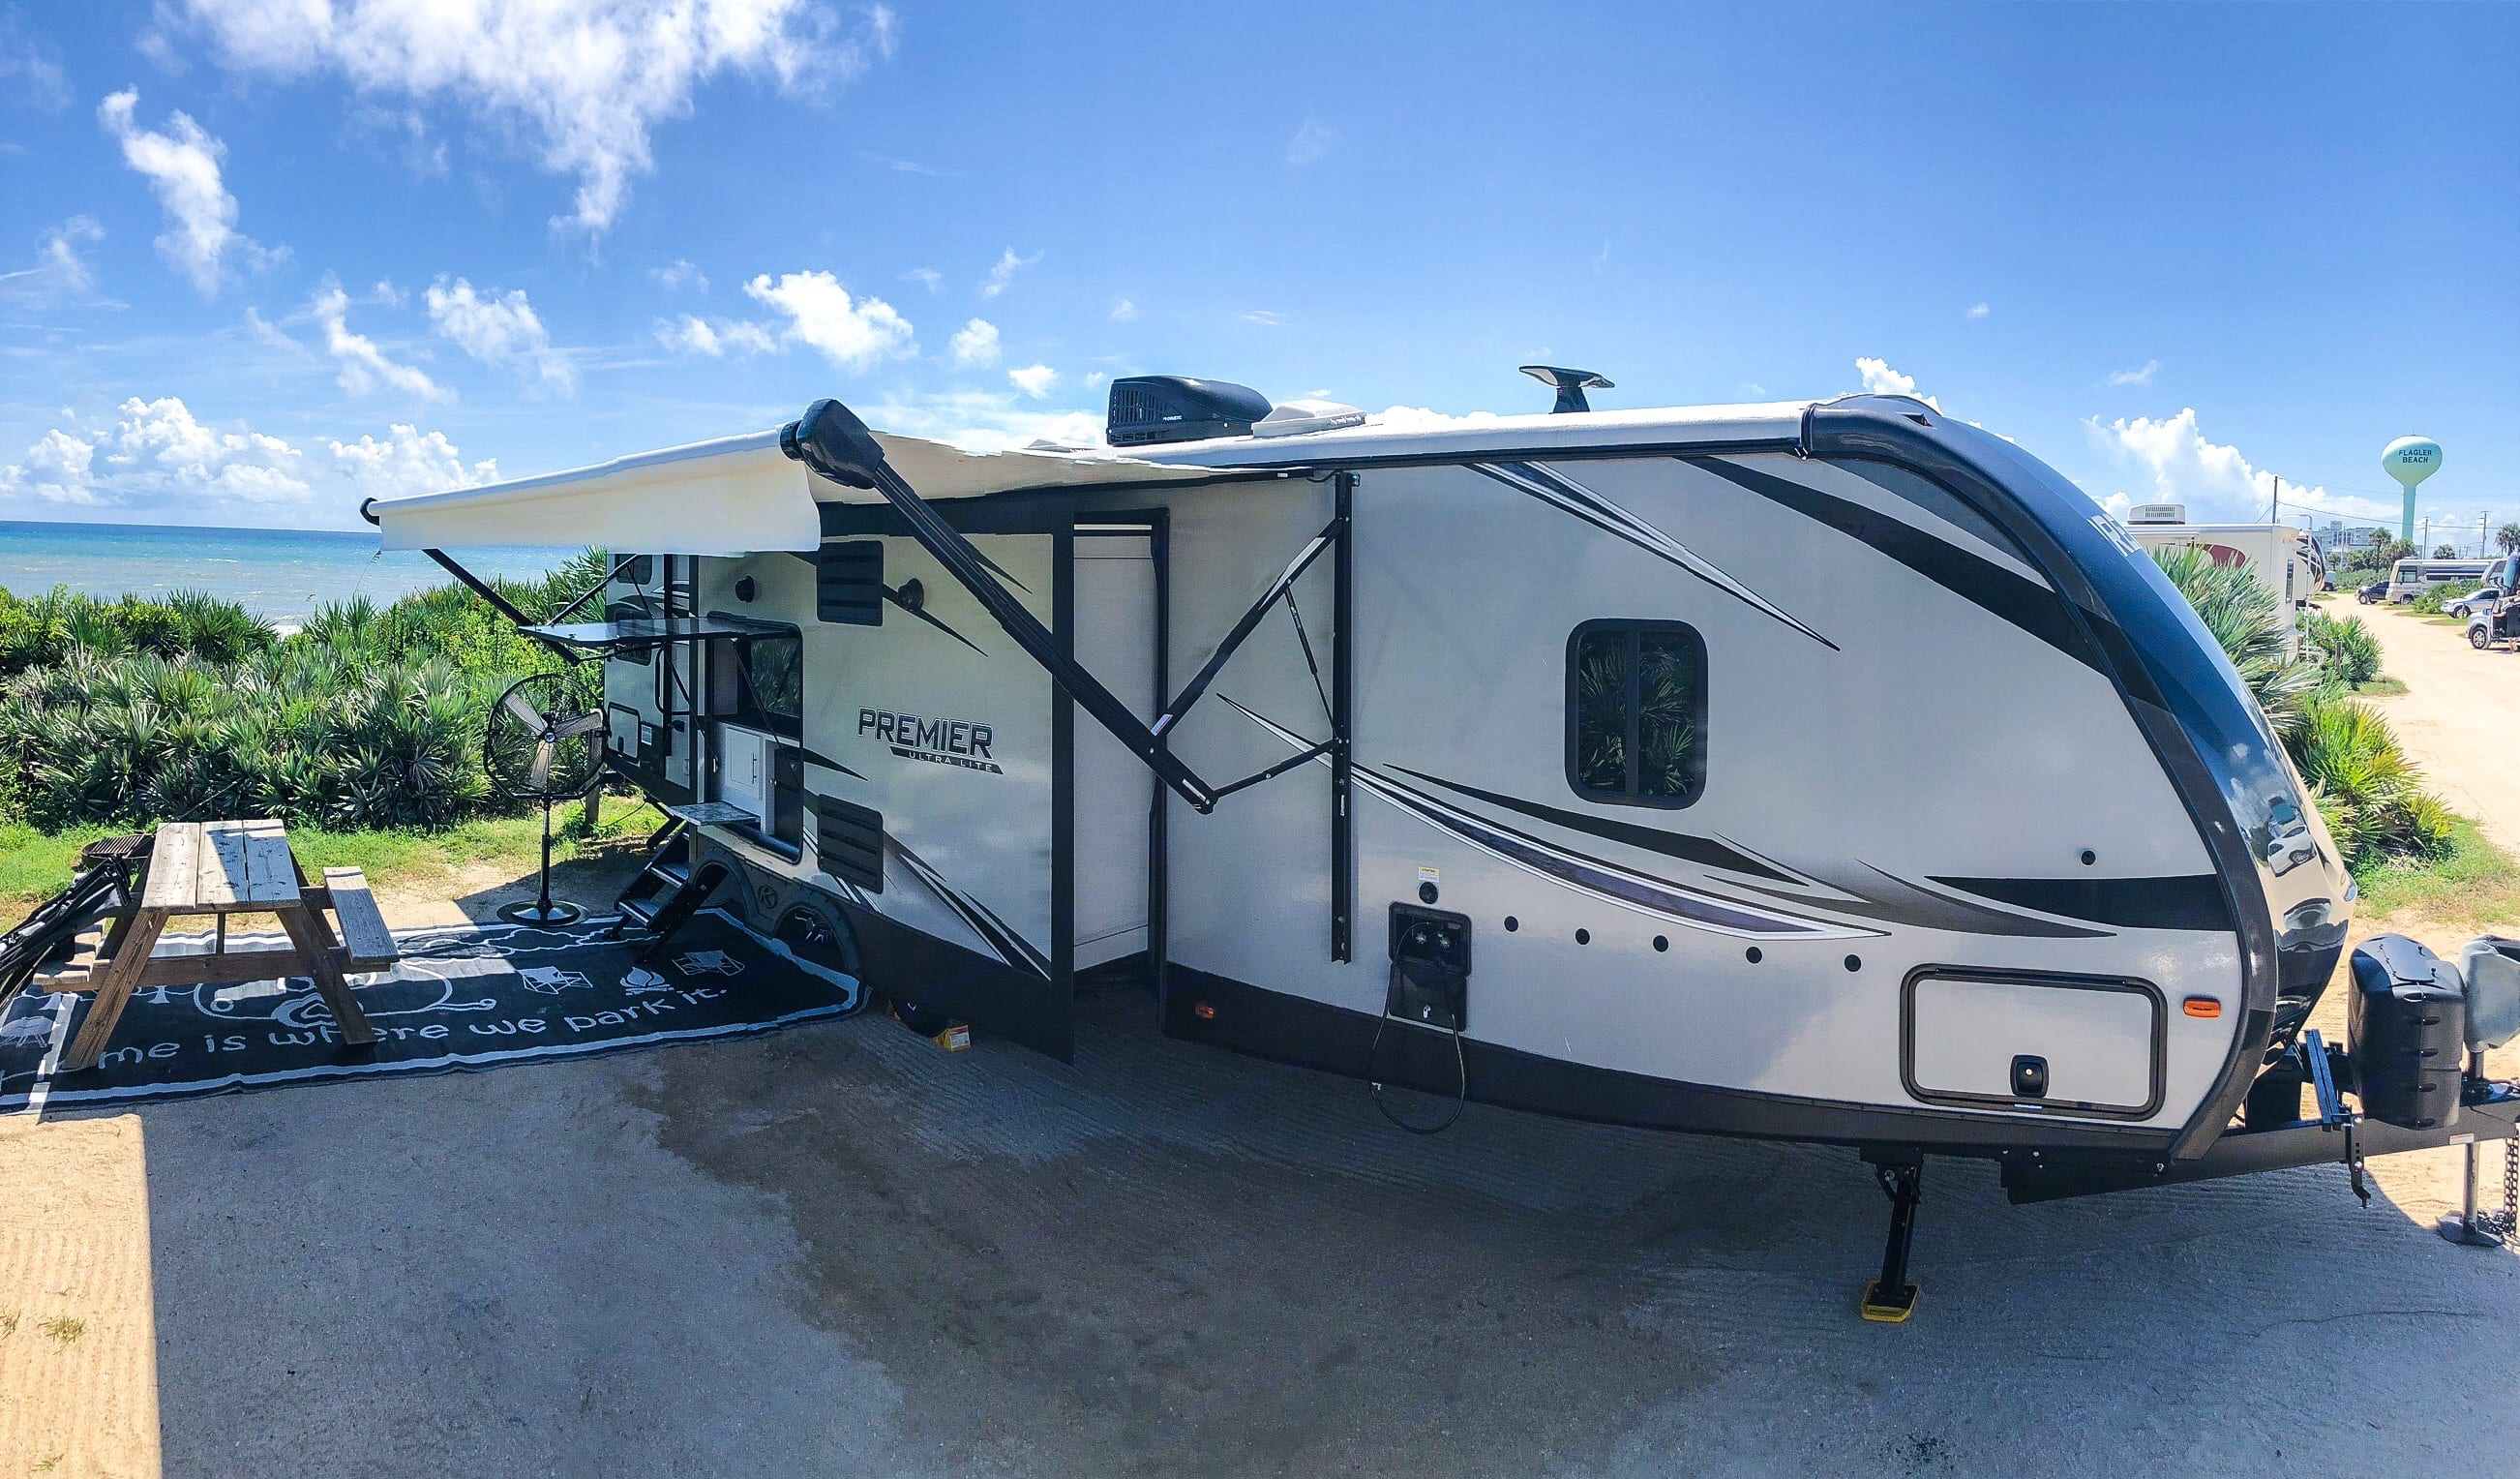 Set up on a beautiful morning at Gamble Rogers State Park at Flagler Beach. . Keystone Bullet Premier 2019